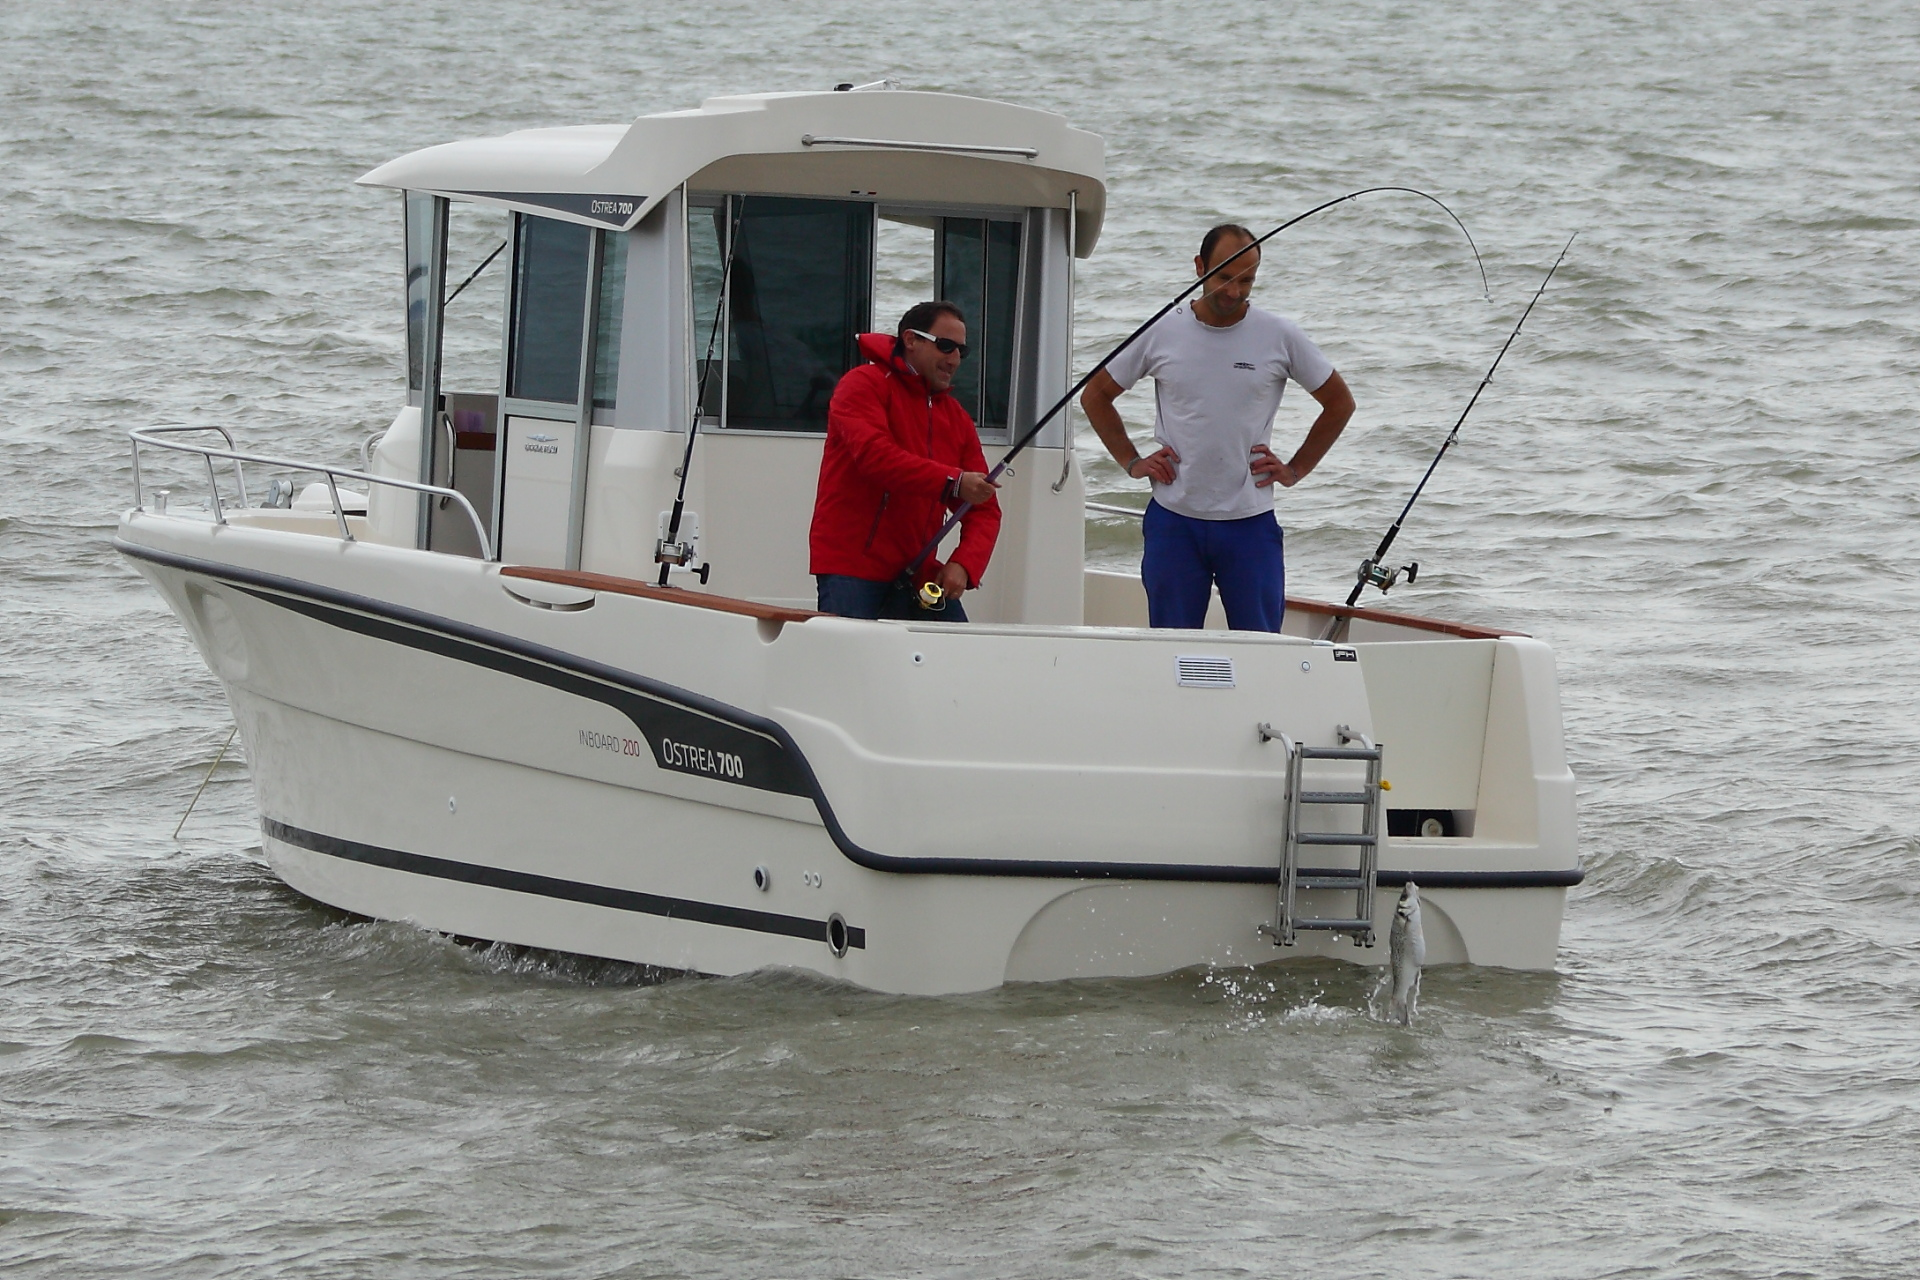 Angling with OCQUETEAU OSTREA 700-200 HP